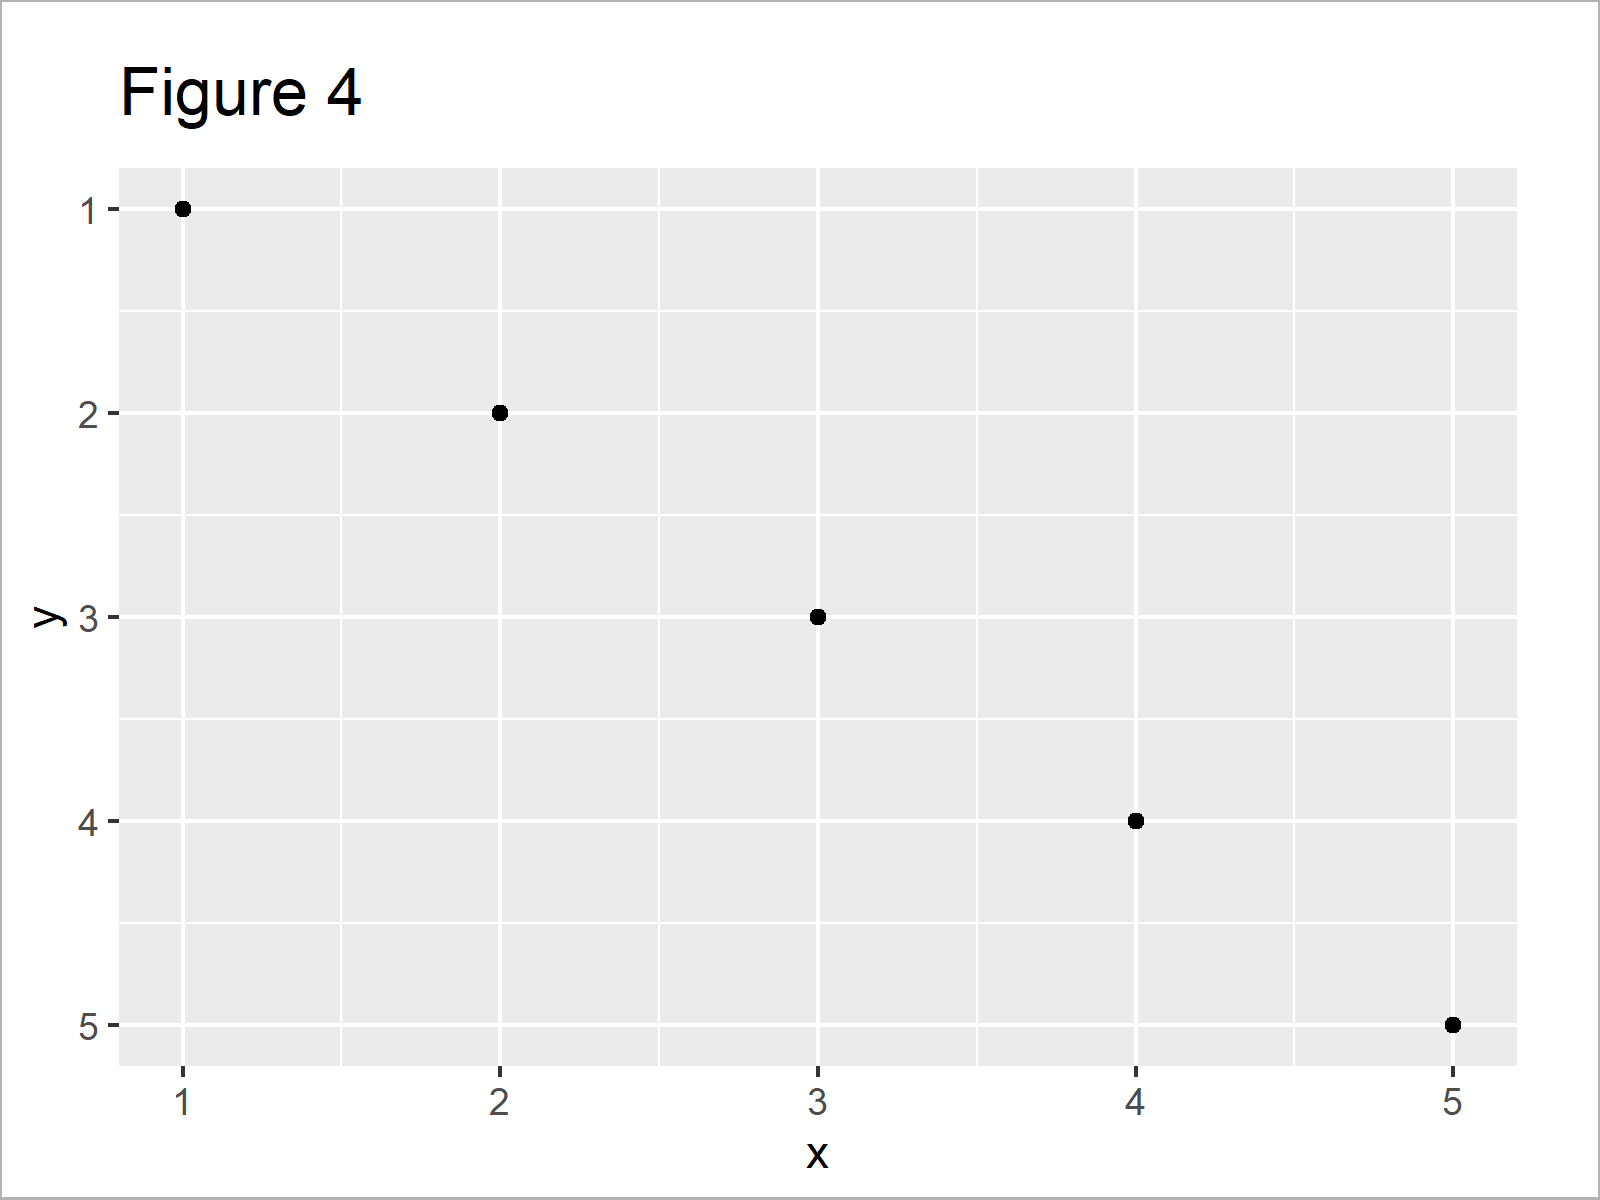 r graph figure 4 reverse axis limits